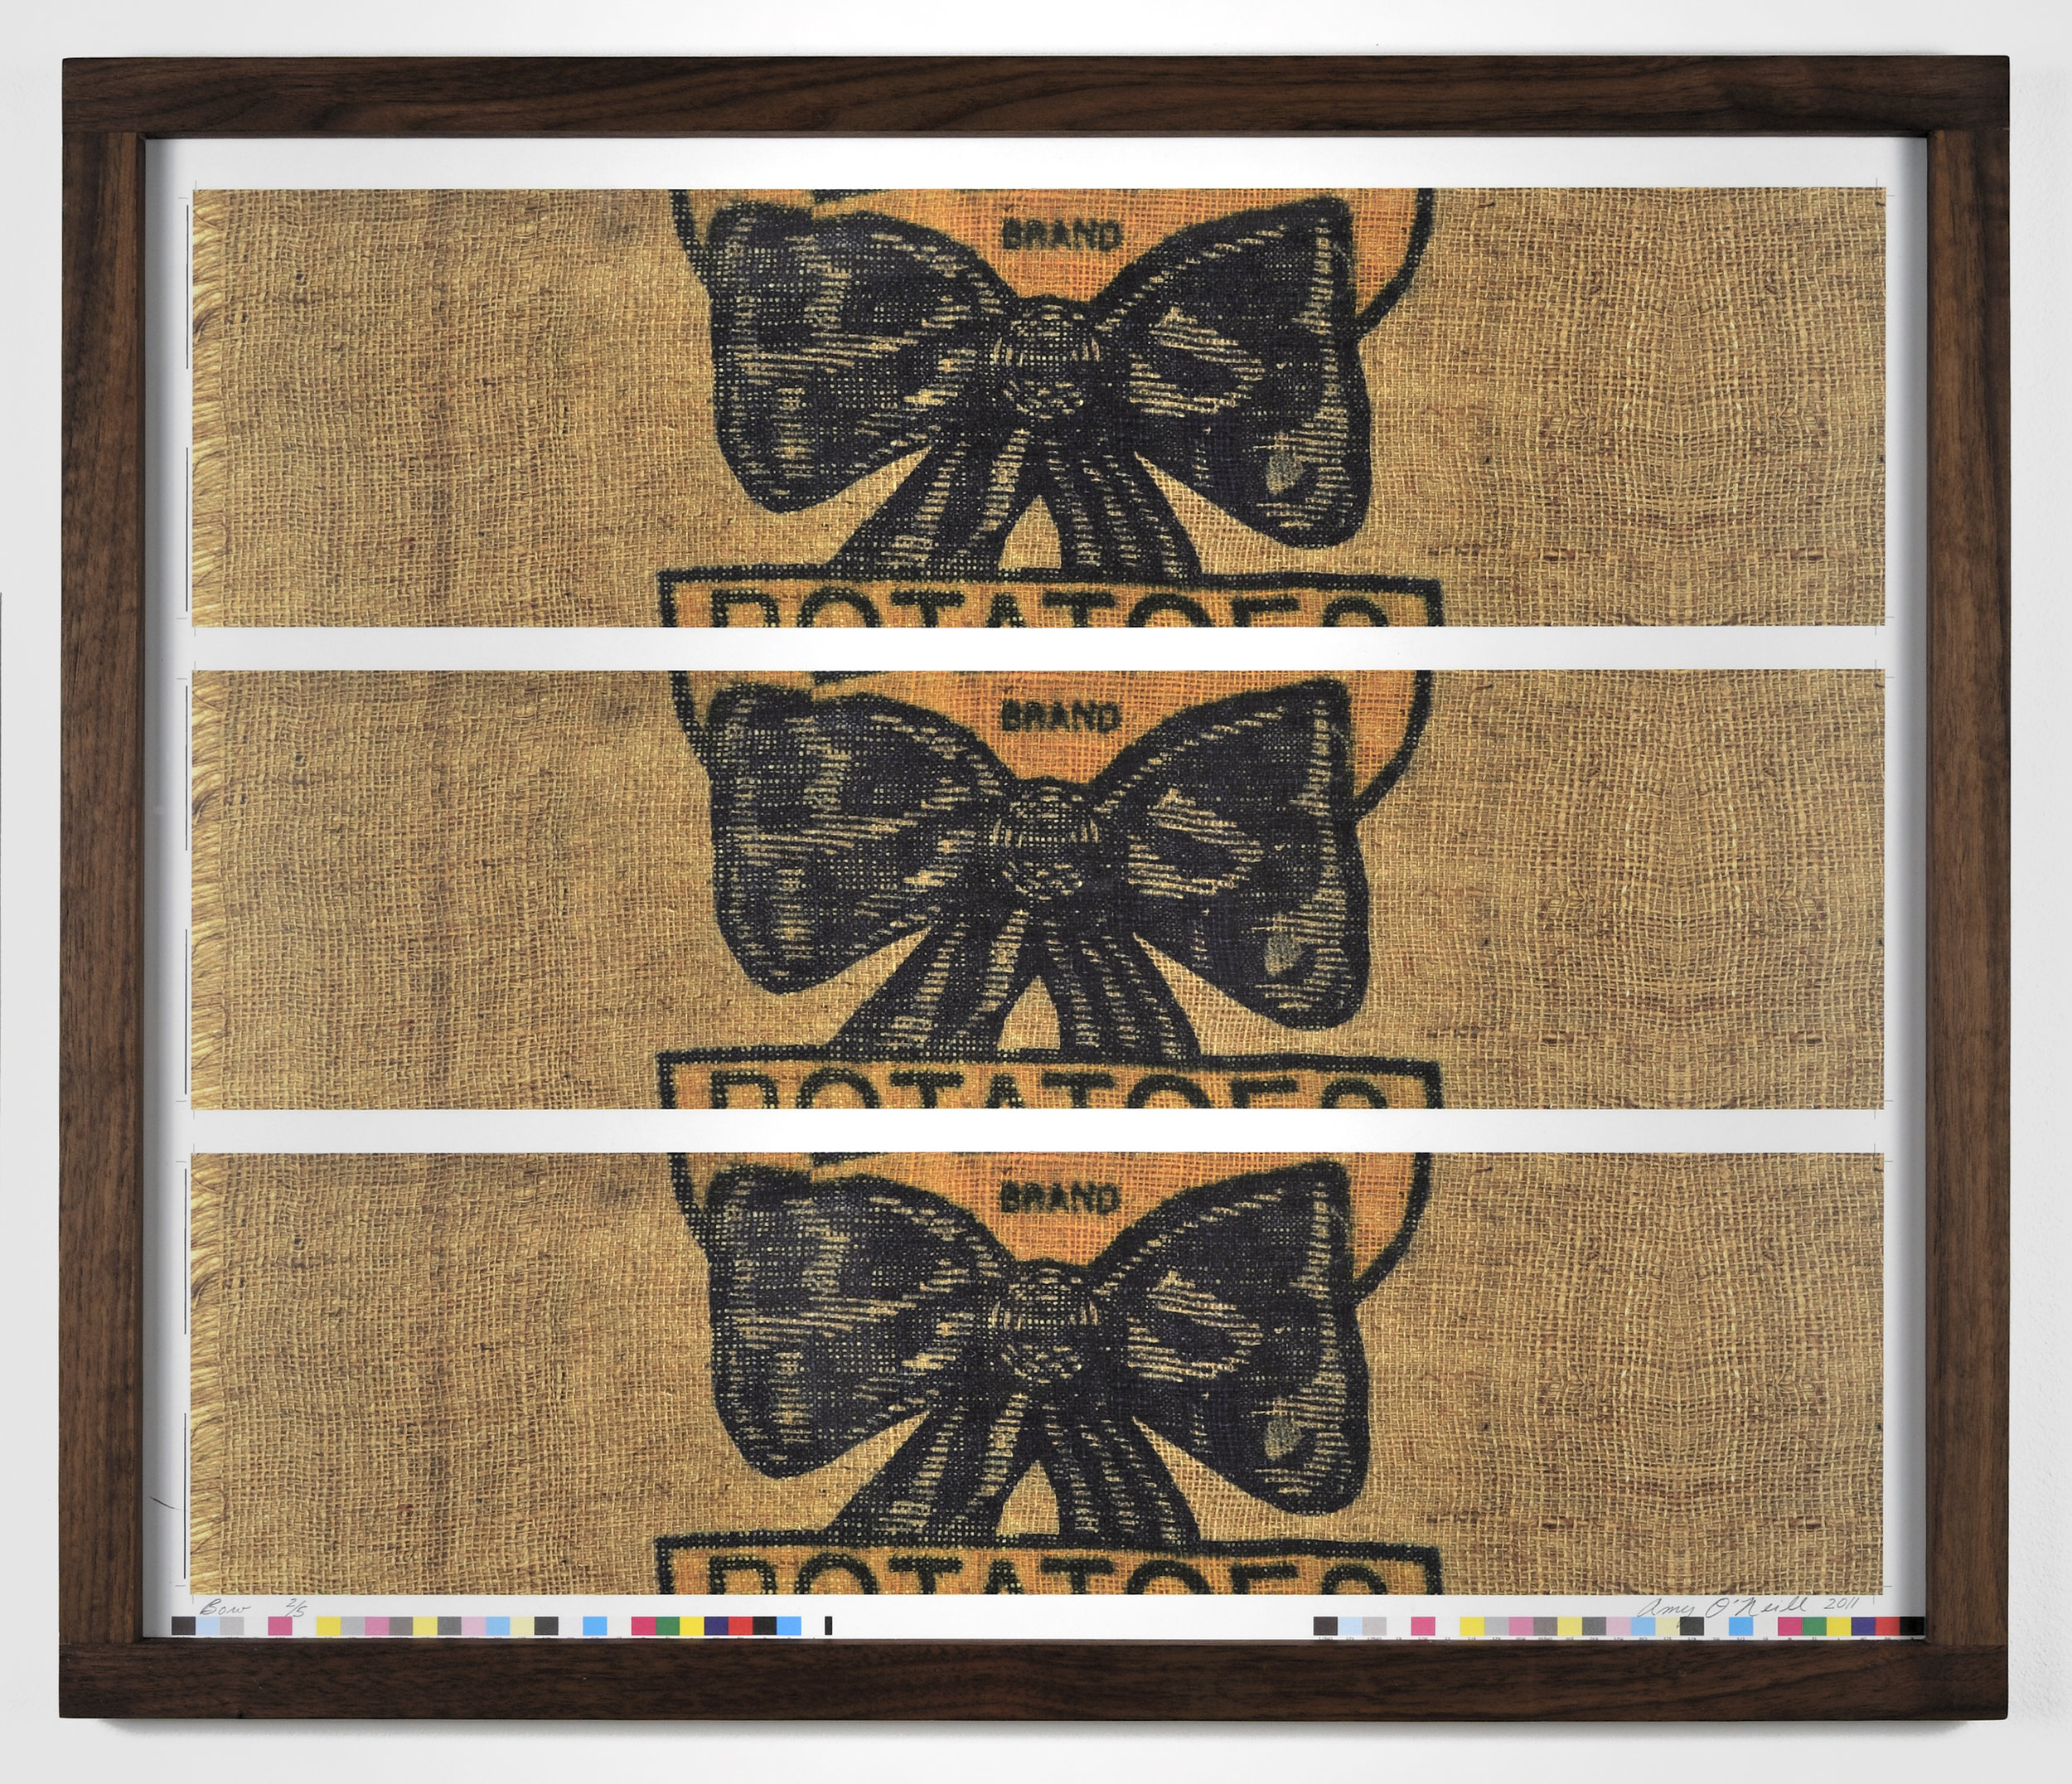 Bow, 2011 offset lithography and walnut wood frame 54,6 x 64 cm - 21 1/2 x 25 1/4 inches